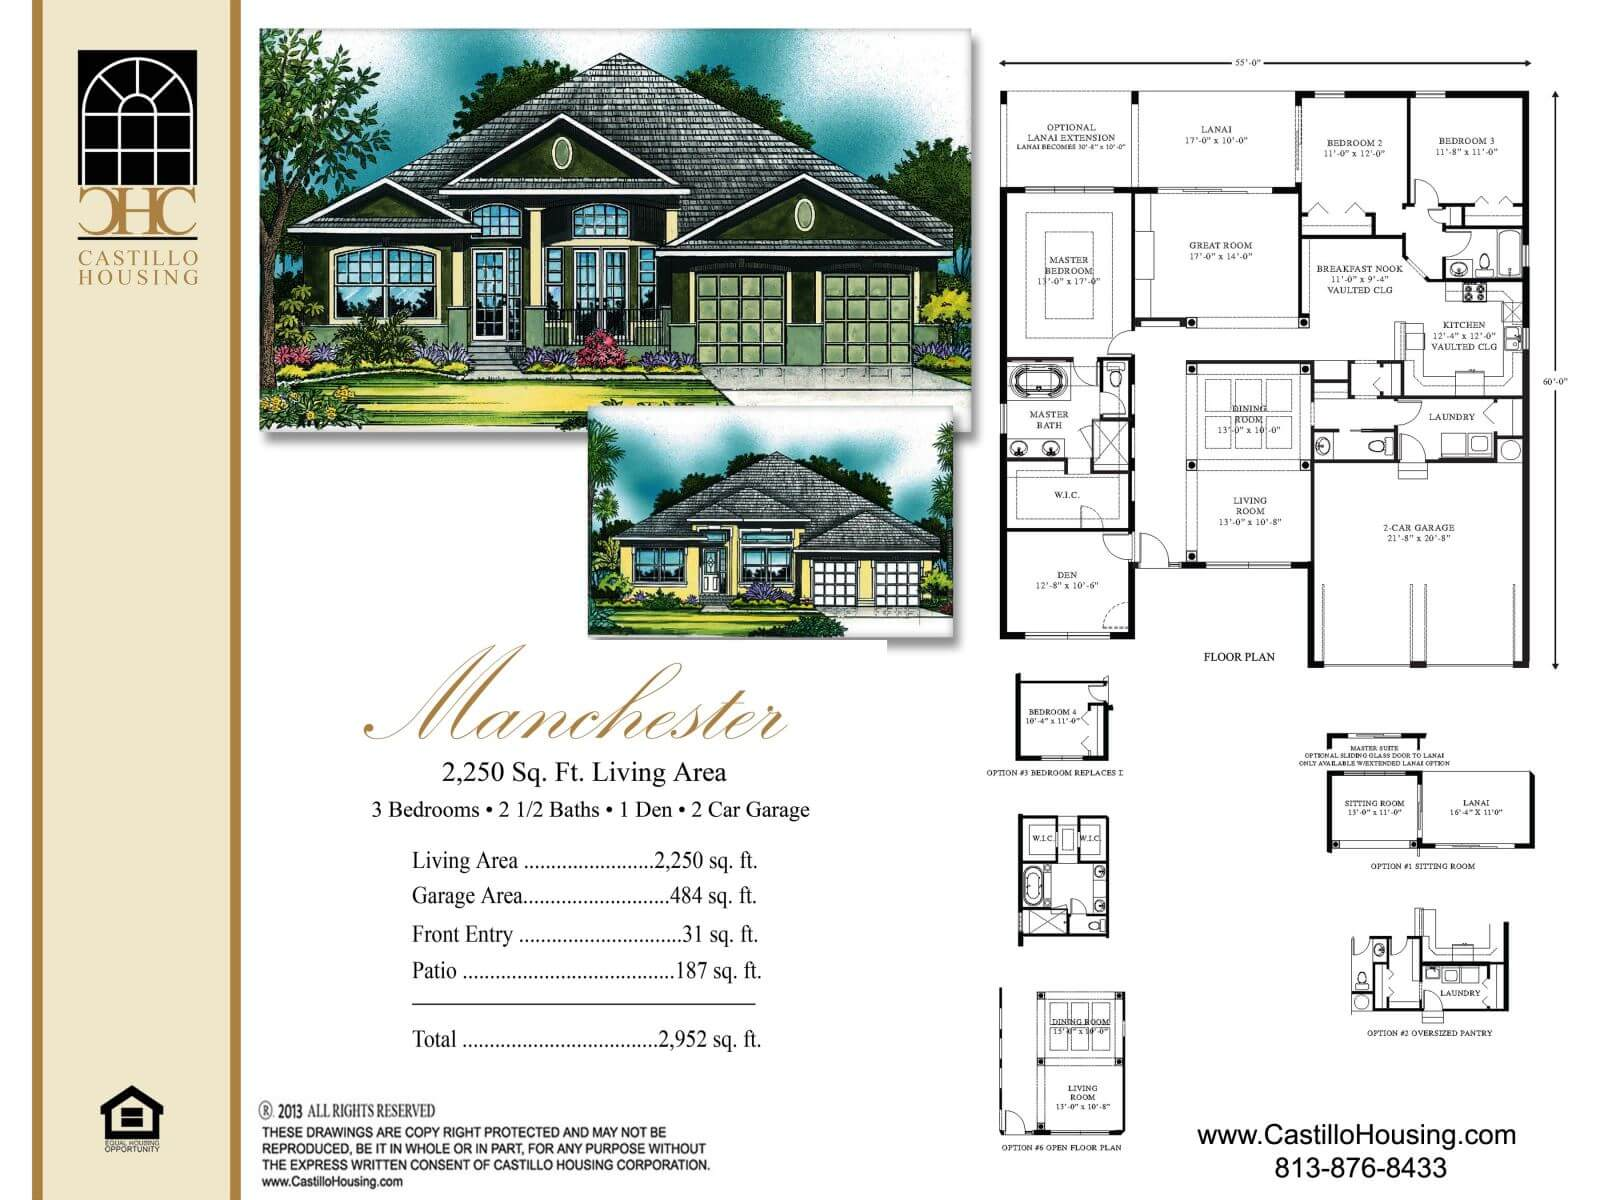 Floor Plans,2,001 SQ FT TO 2,500 SQ FT,1028